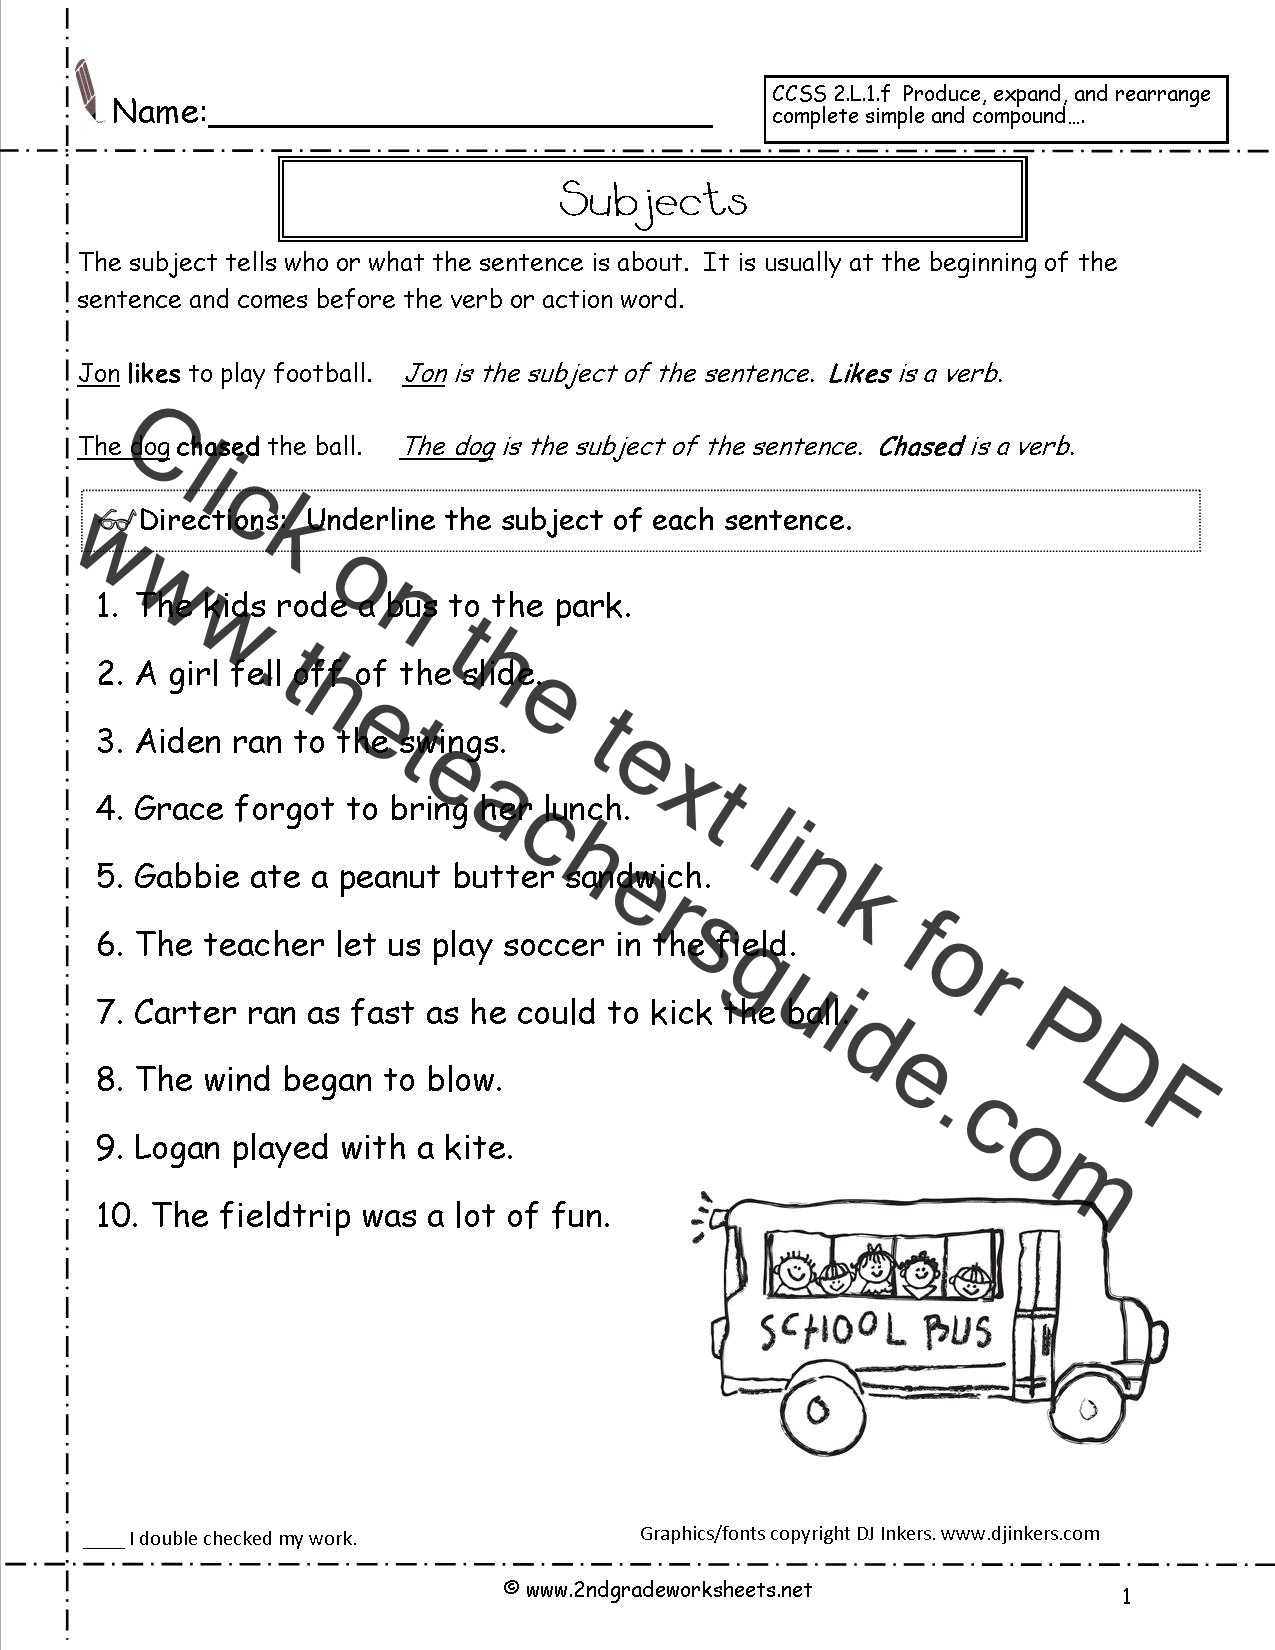 Printables Complete Sentence Worksheets second grade sentences worksheets ccss 2 l 1 f sentence worksheet subjects